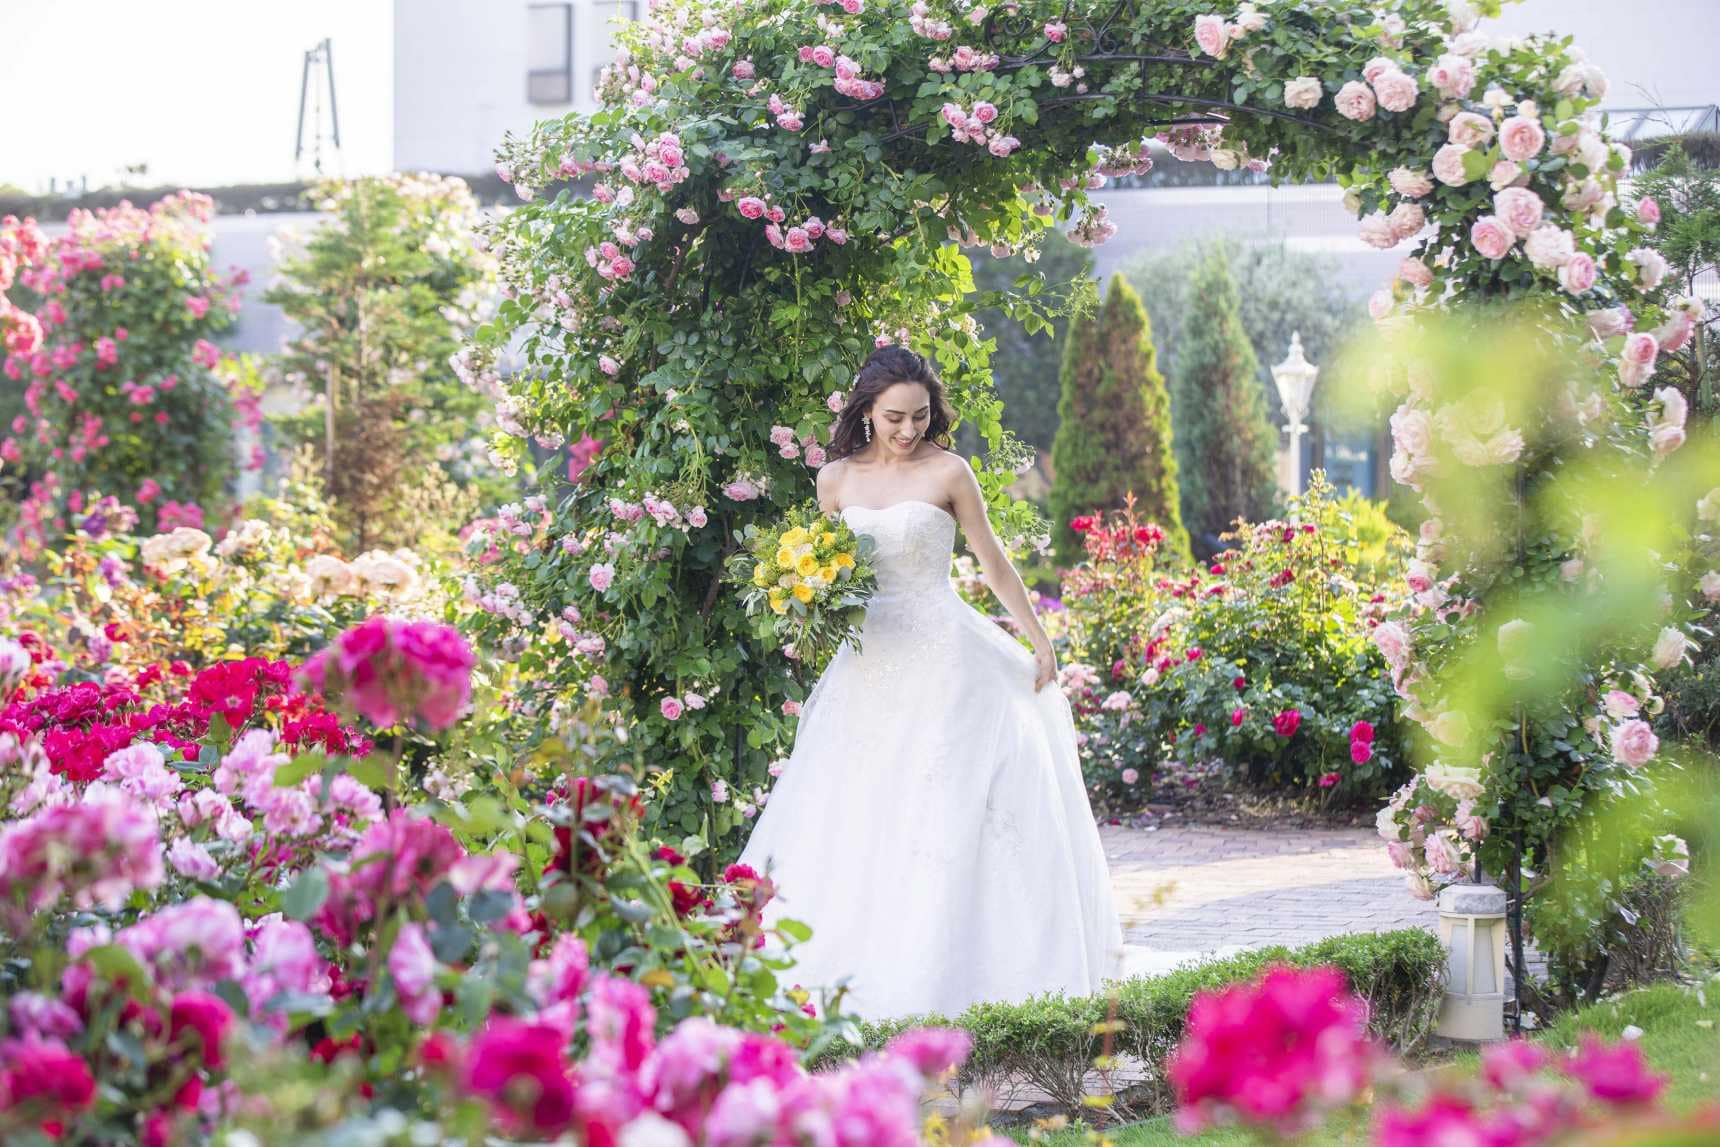 Bride in the Garden